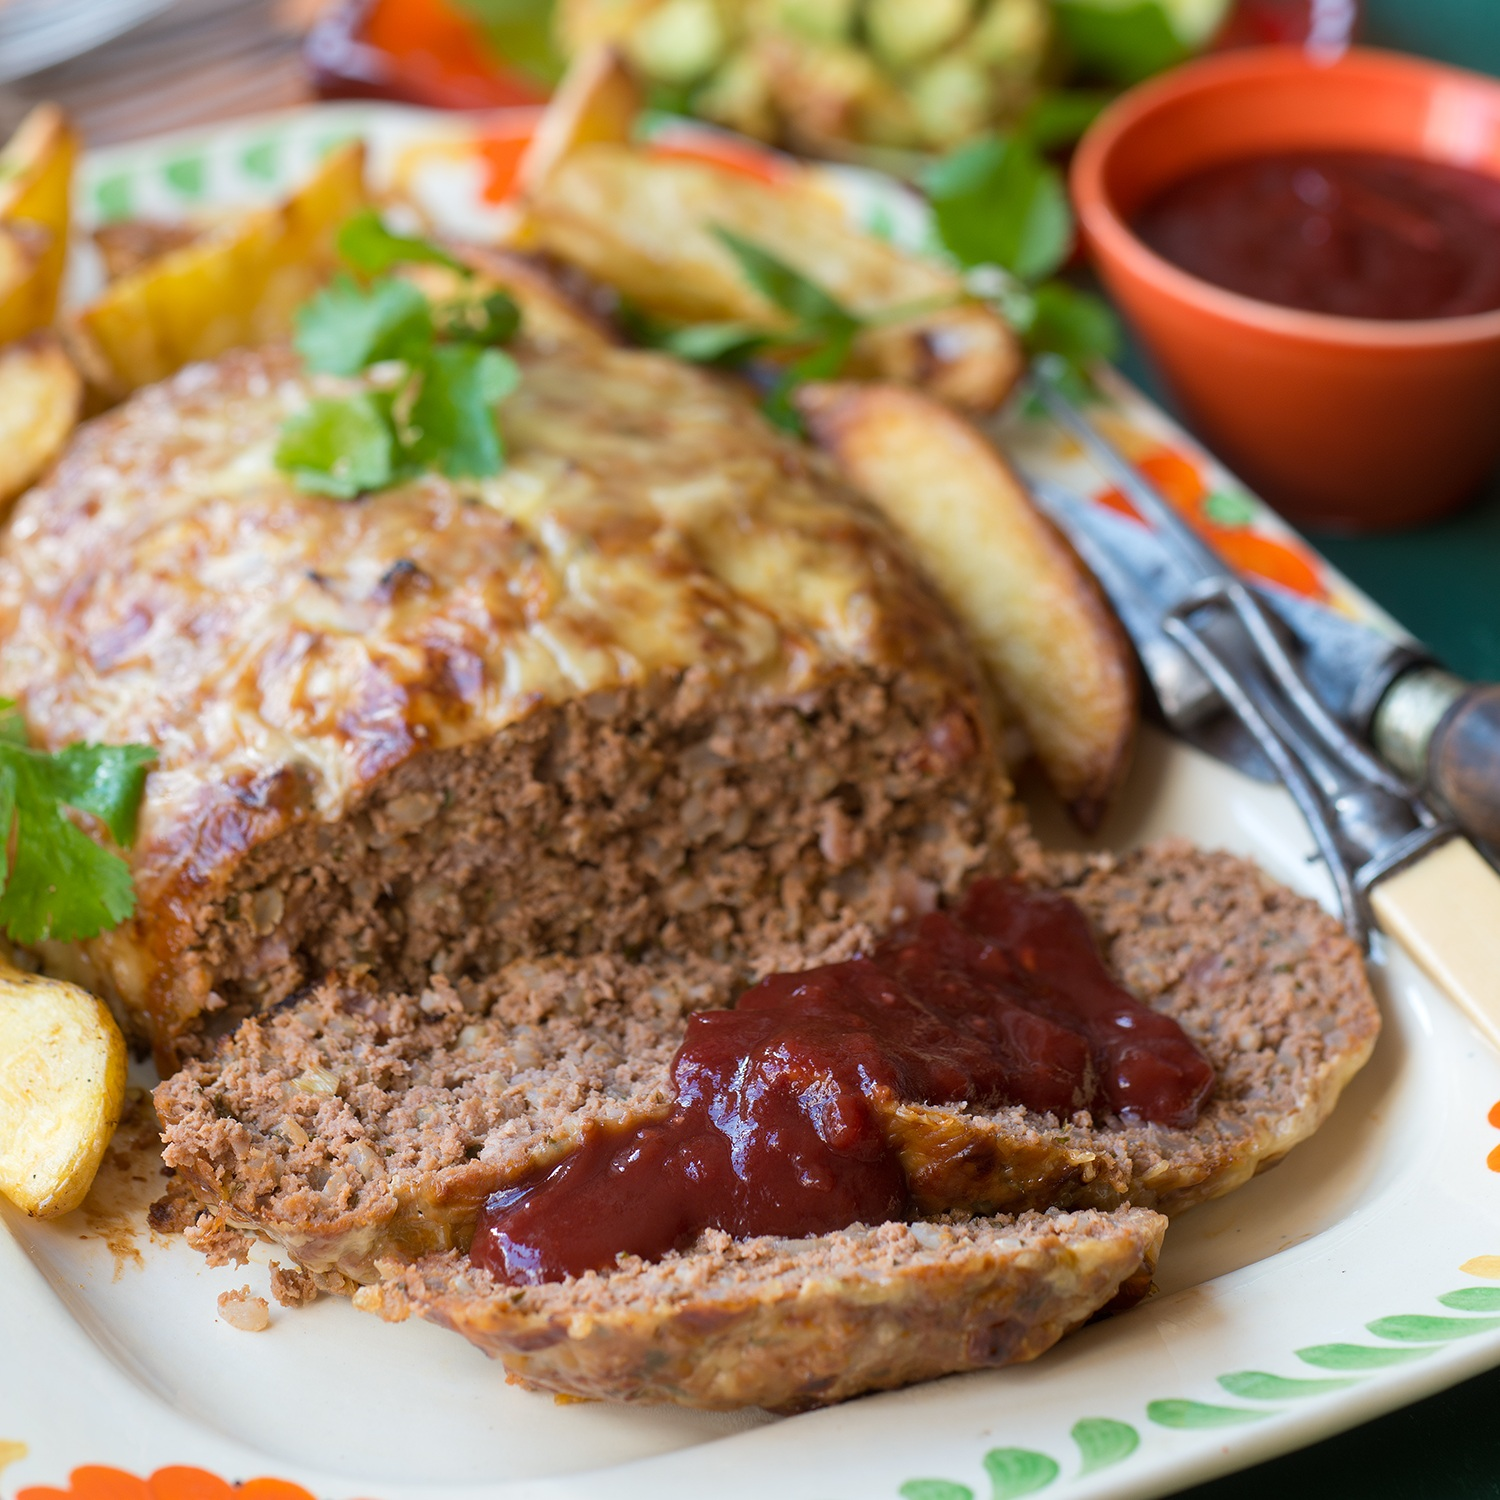 TEXAS MEATLOAF WITH GUACAMOLE - This dish embraces the full on flavours of Tabasco sauce, guacamole and sweet peppery barbecue sauce making for a sensational yet comforting southern dining experience. We like to enjoy this meatloaf with homemade potato wedges.